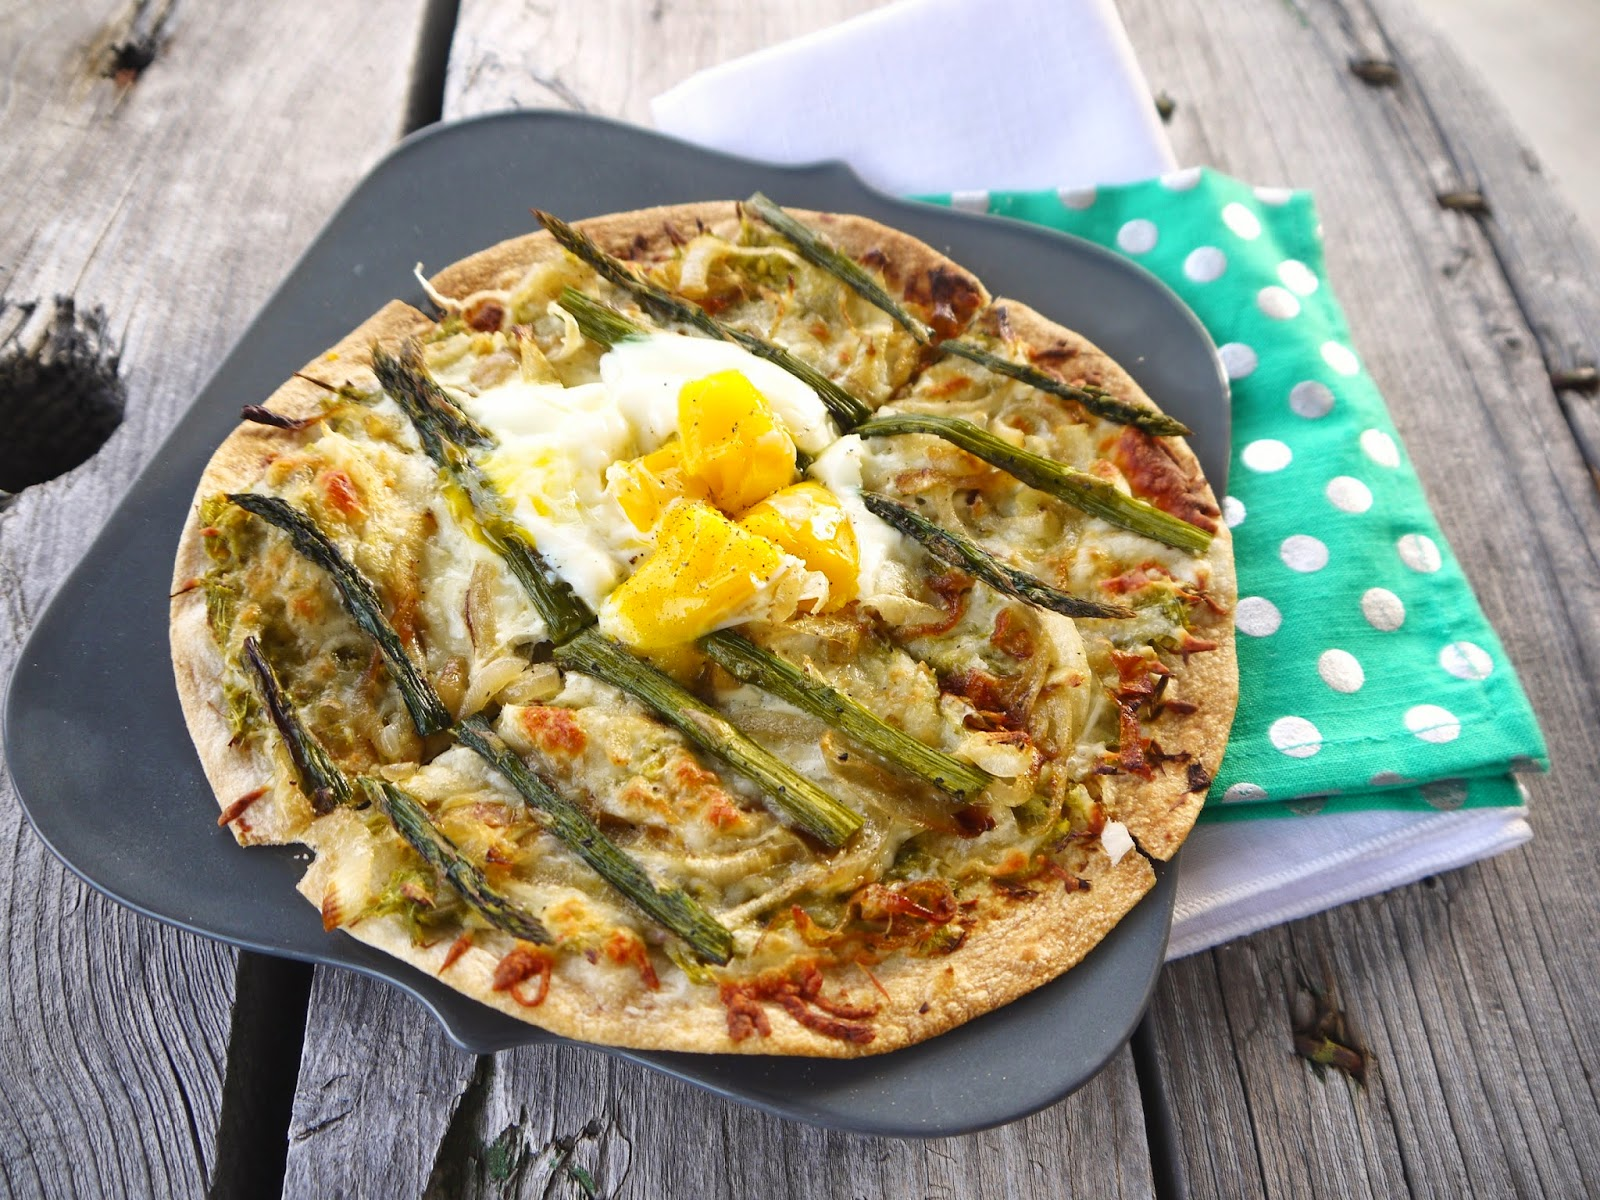 http://www.eat8020.com/2014/03/80-asparagus-caramelized-onion-and-egg.html